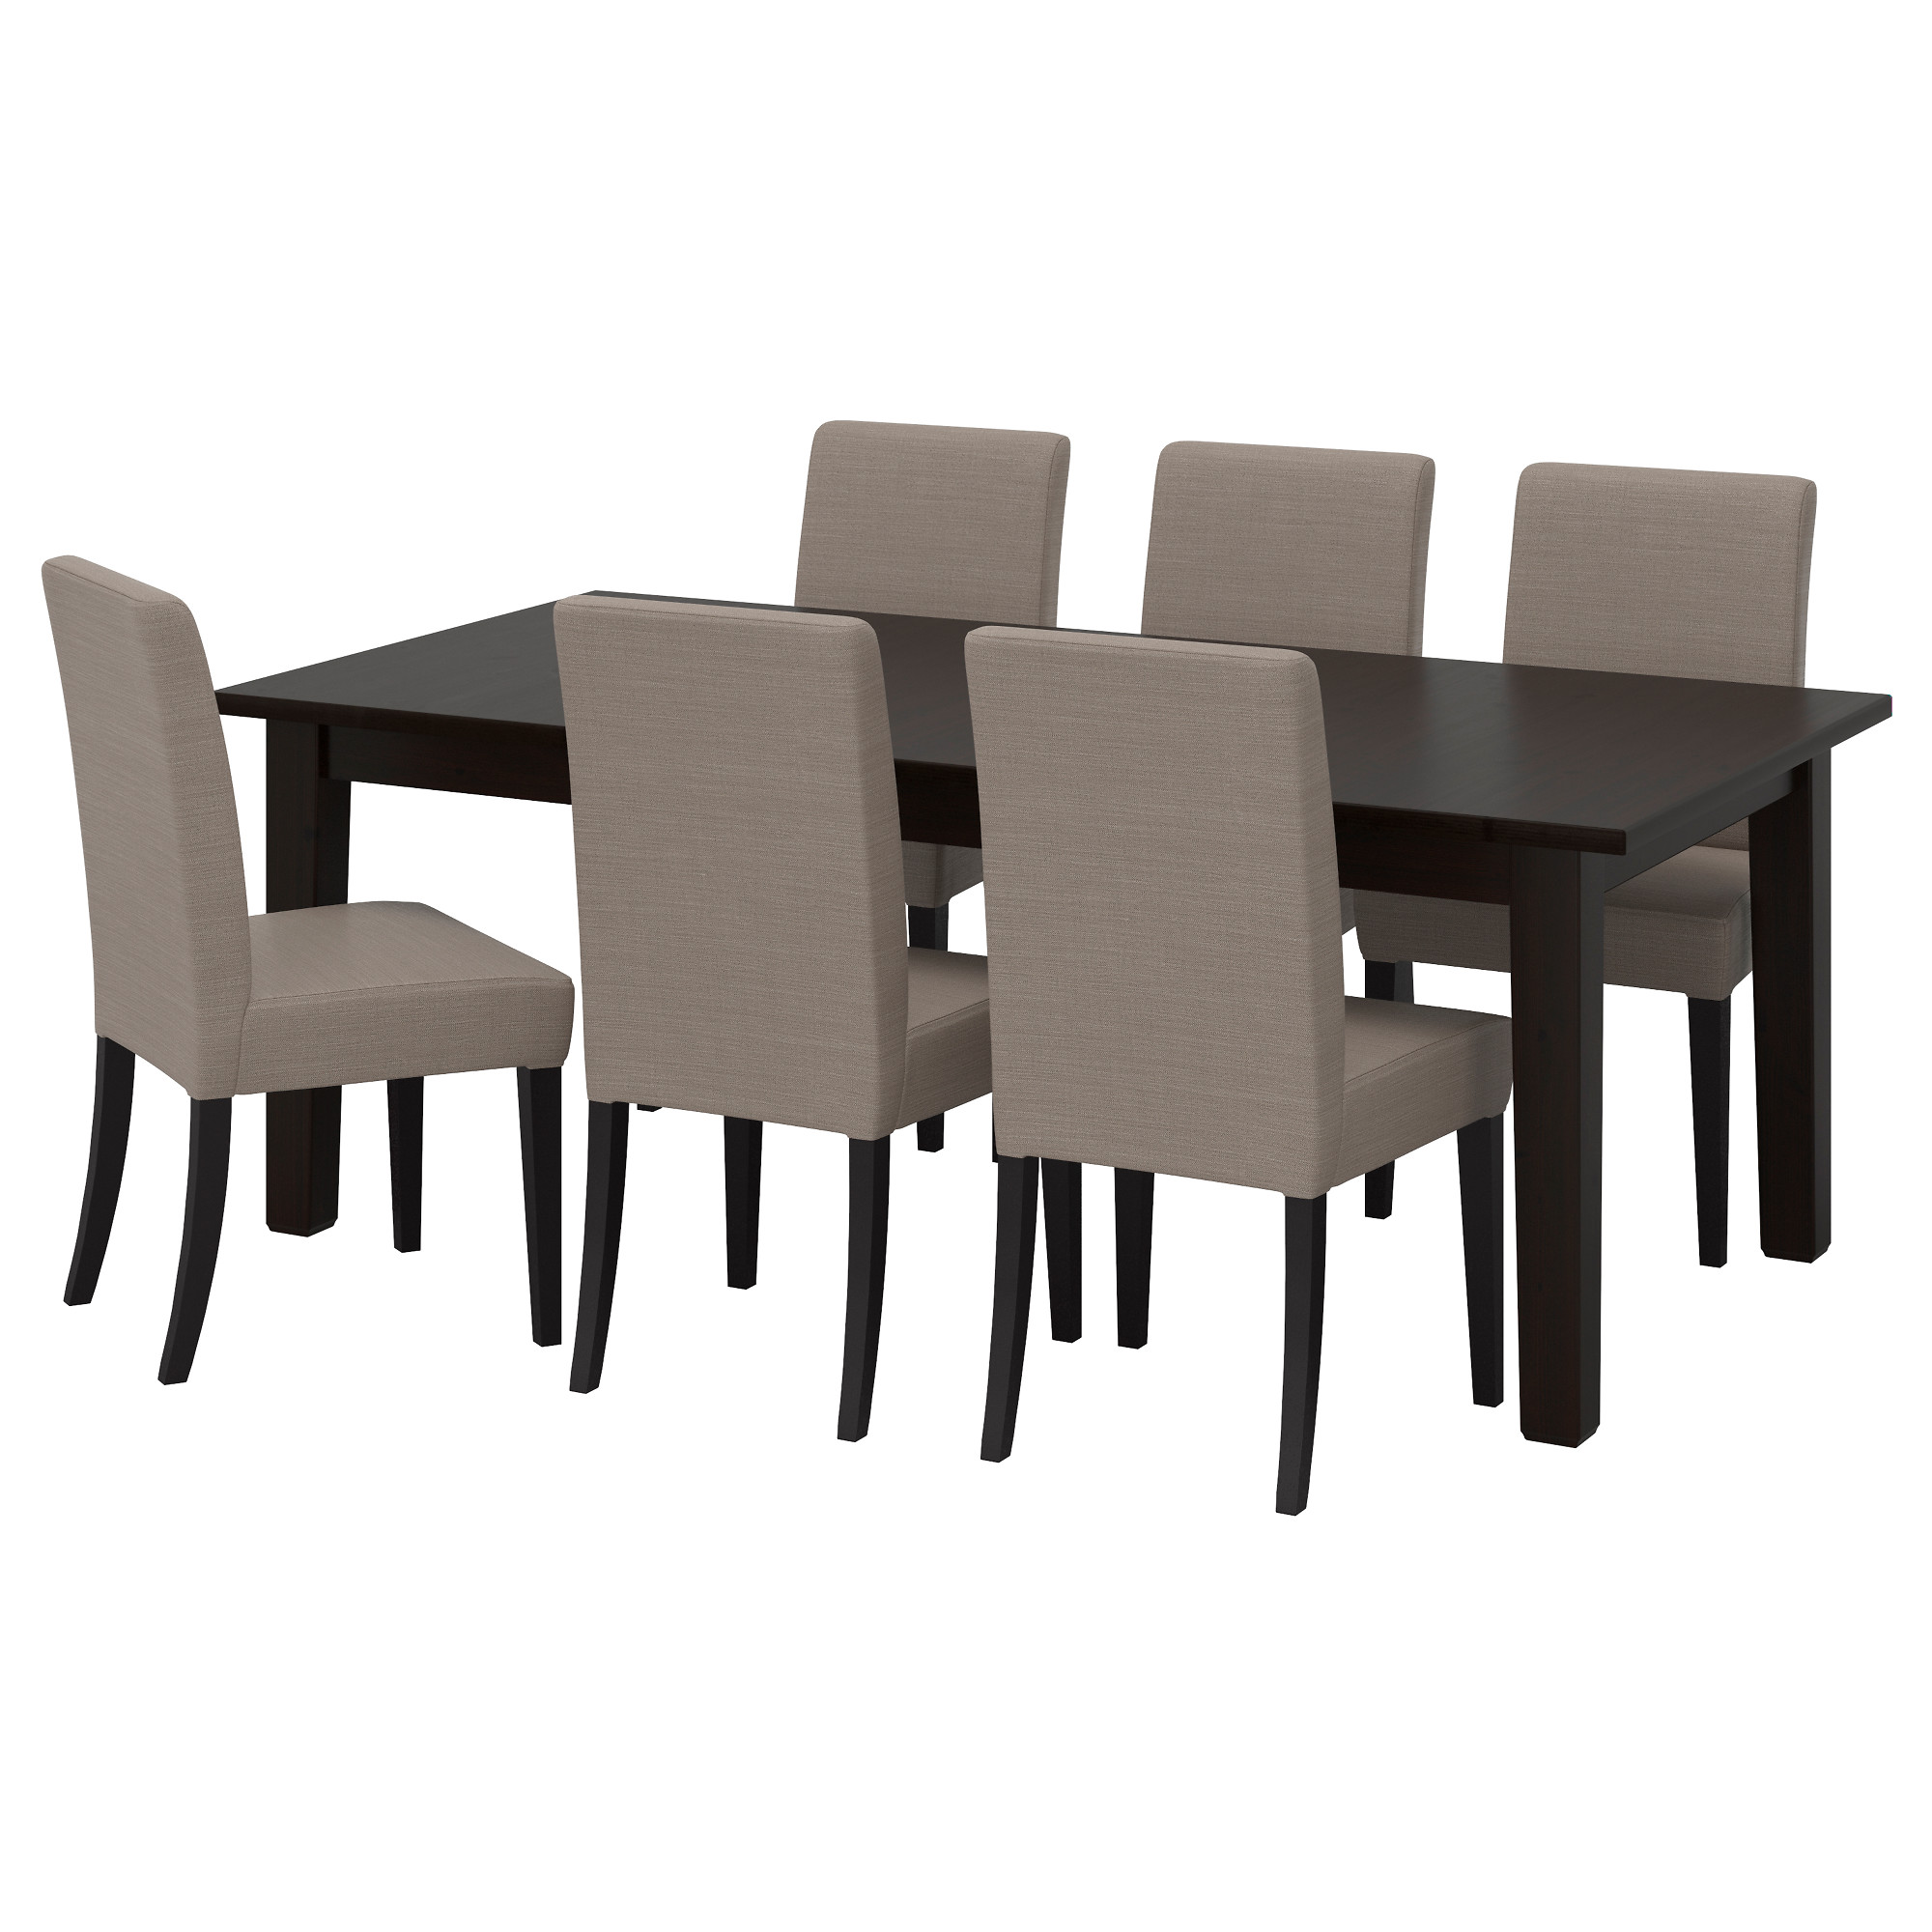 STORNÄS / HENRIKSDAL Table And 6 Chairs, Brown Black, Nolhaga Gray Beige